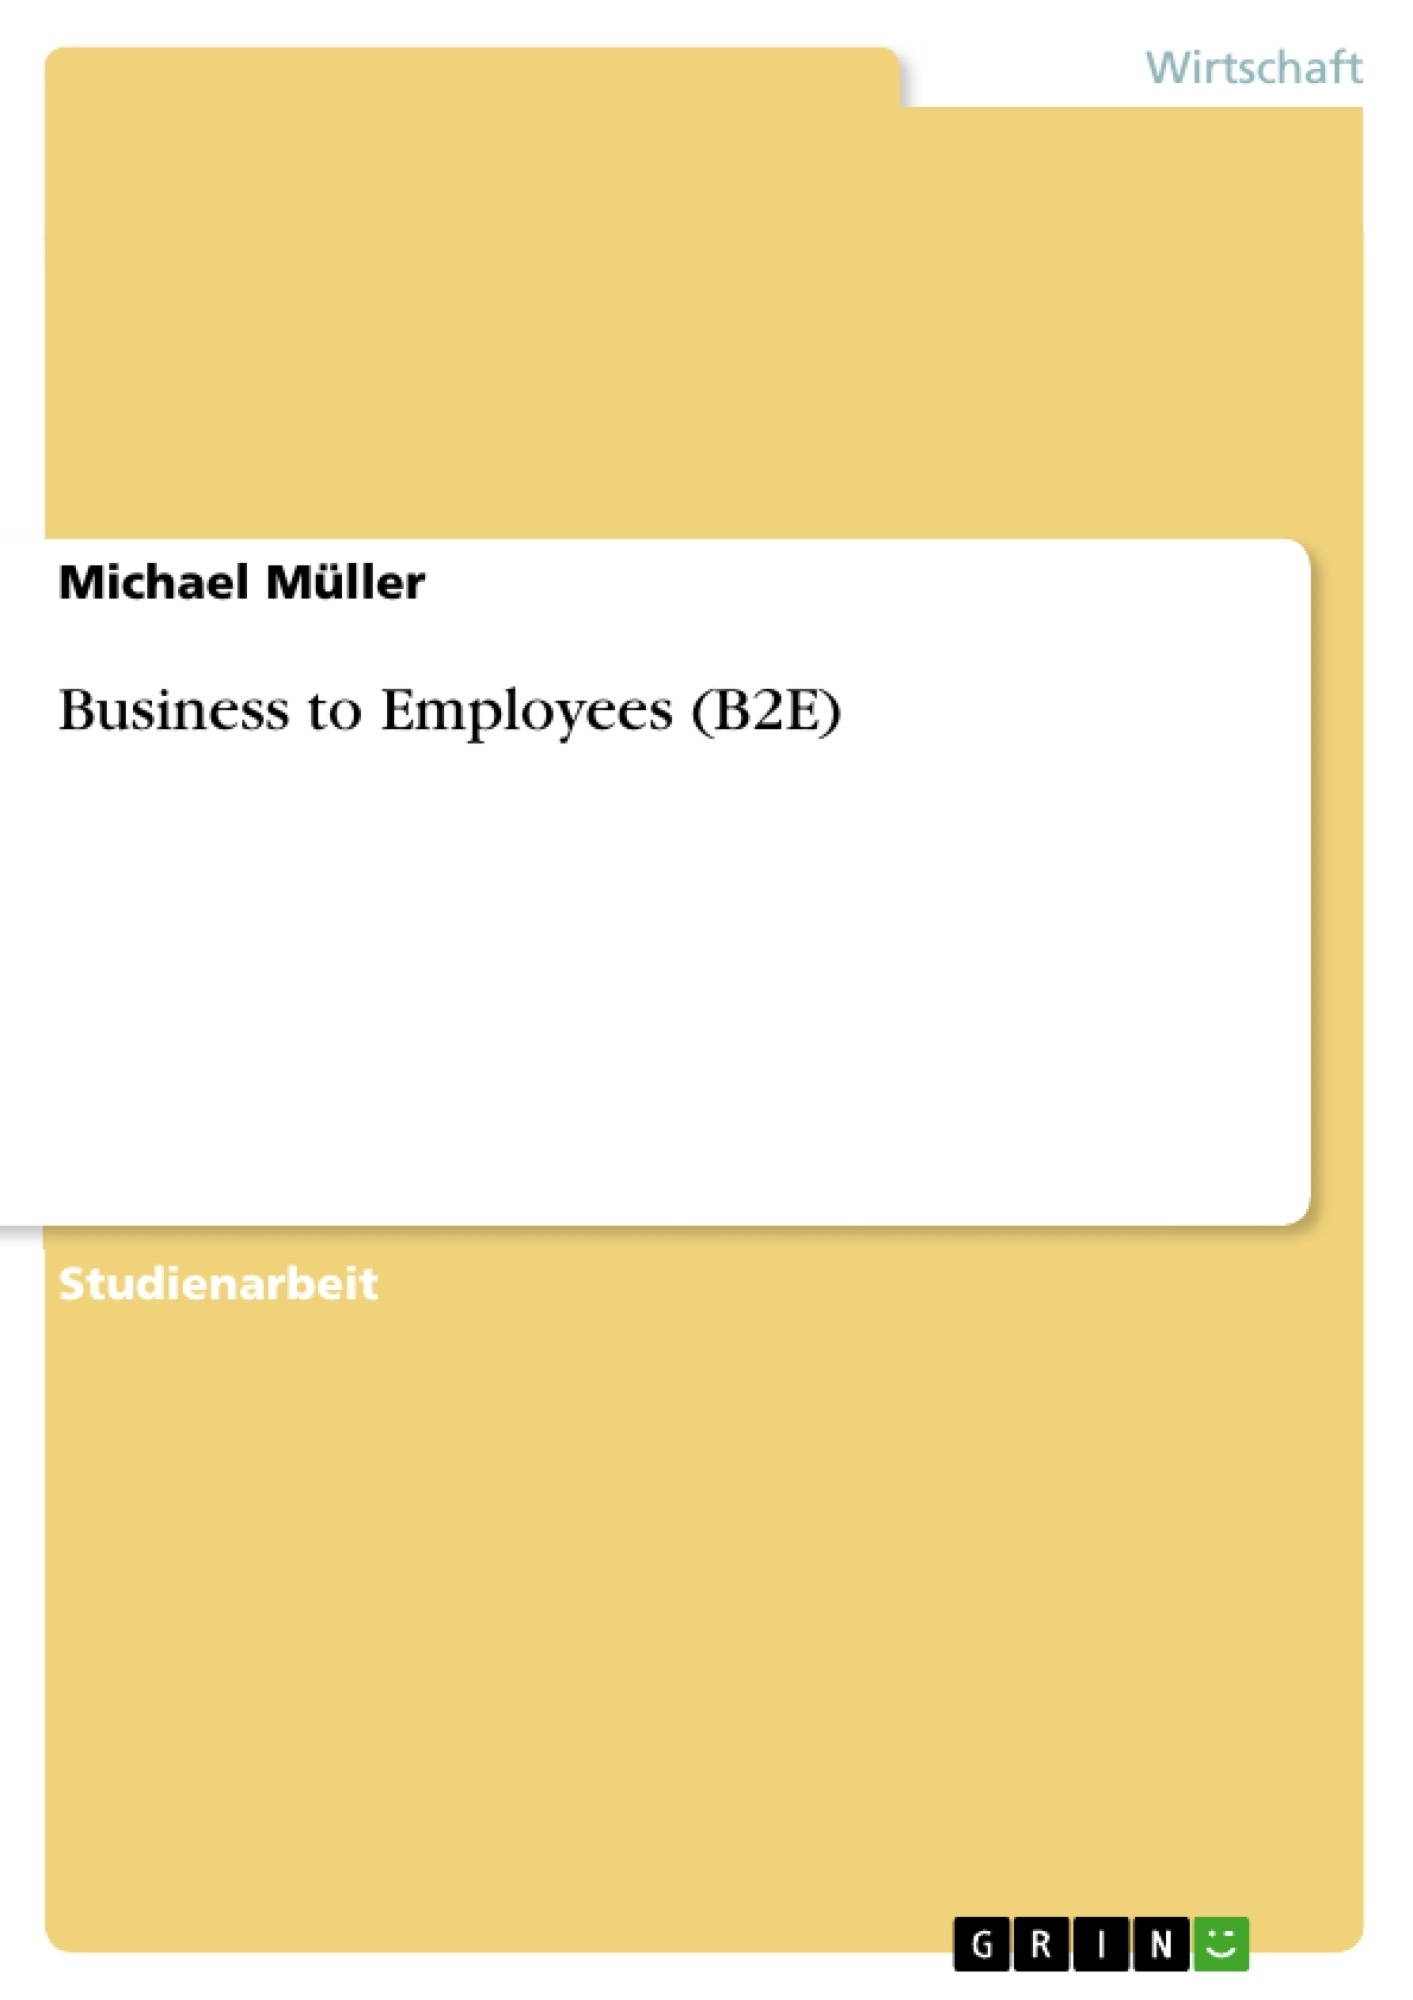 Titel: Business to Employees (B2E)